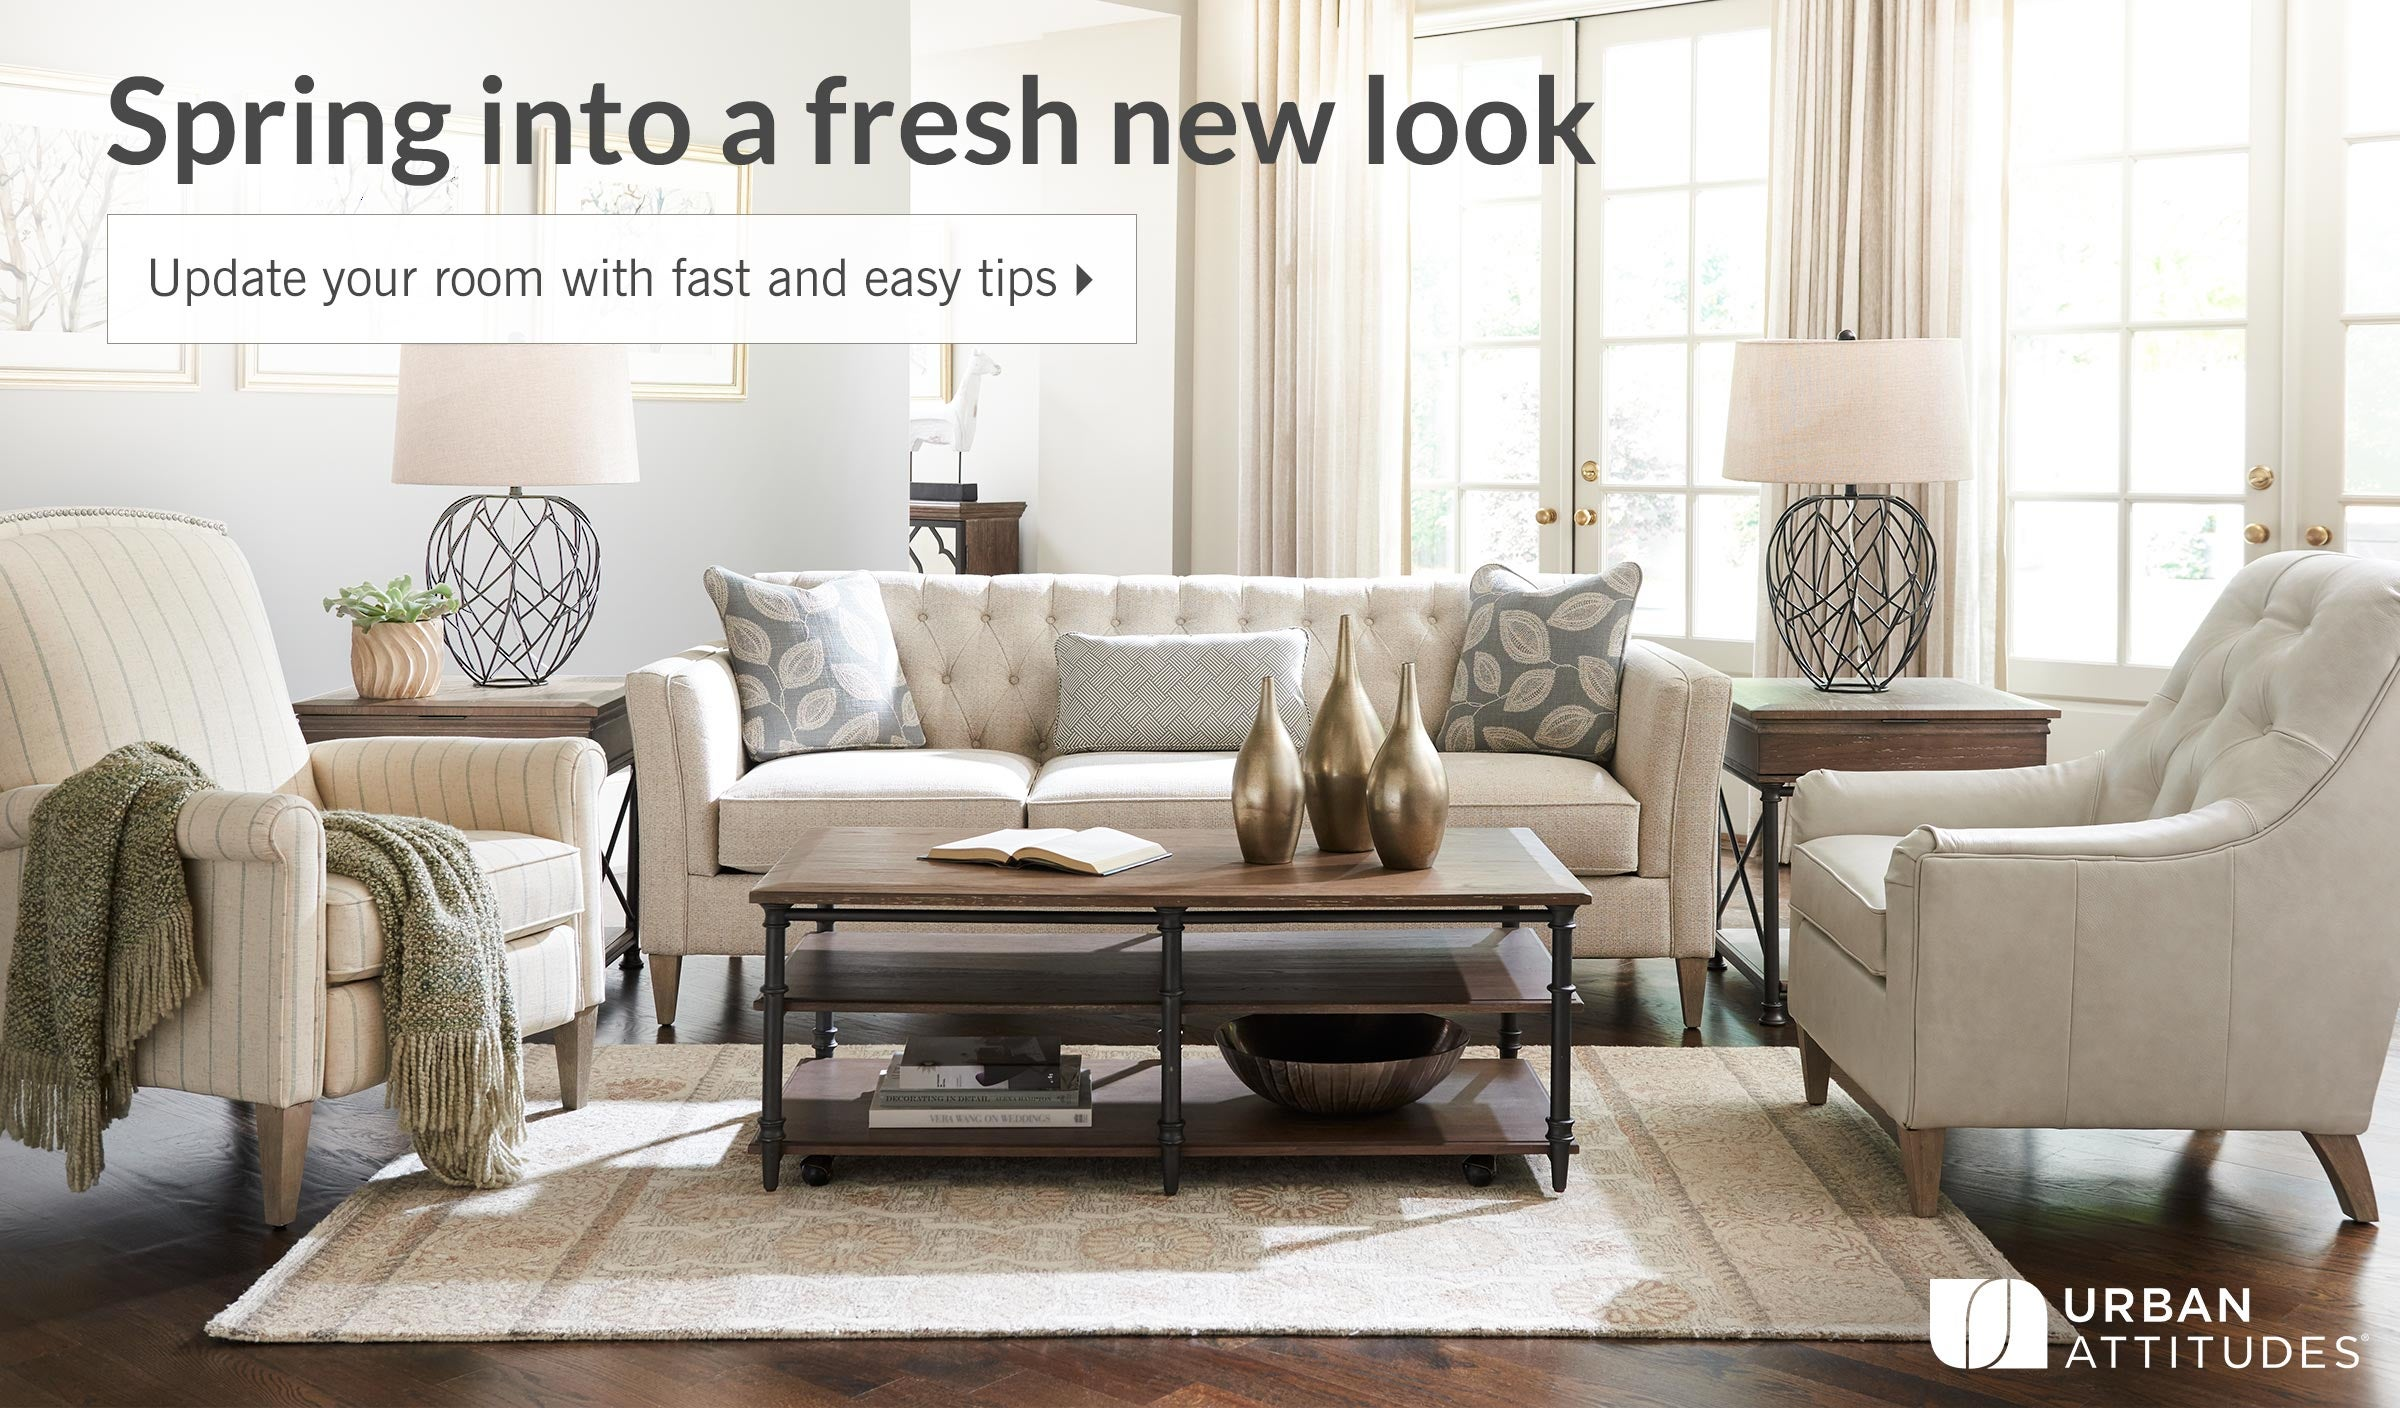 Spring into a fresh new look. Update your room with fast and easy tips.